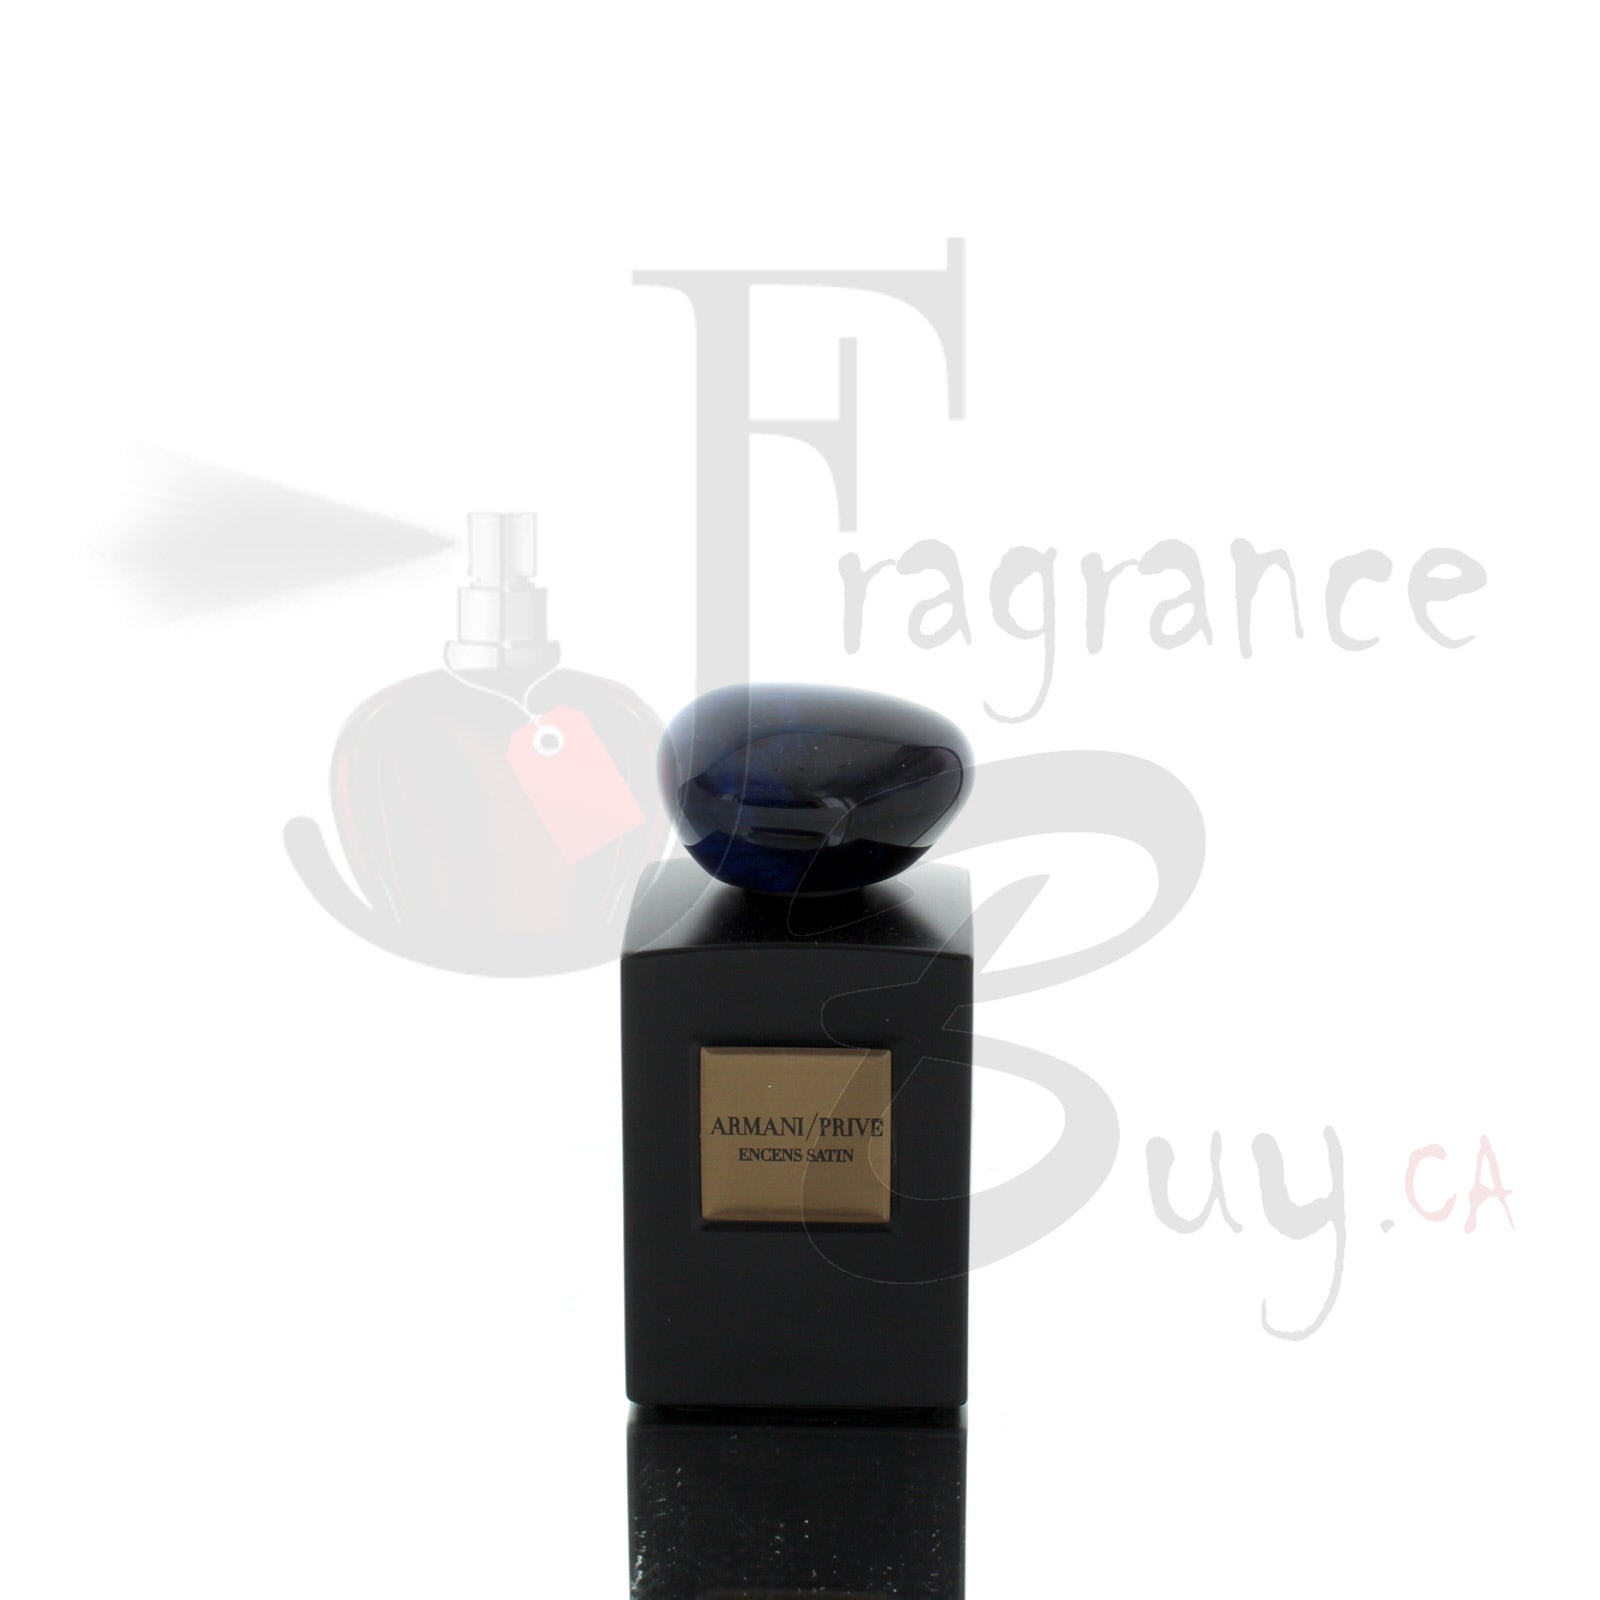 Giorgio Armani Prive Encens Satin For Man/Woman